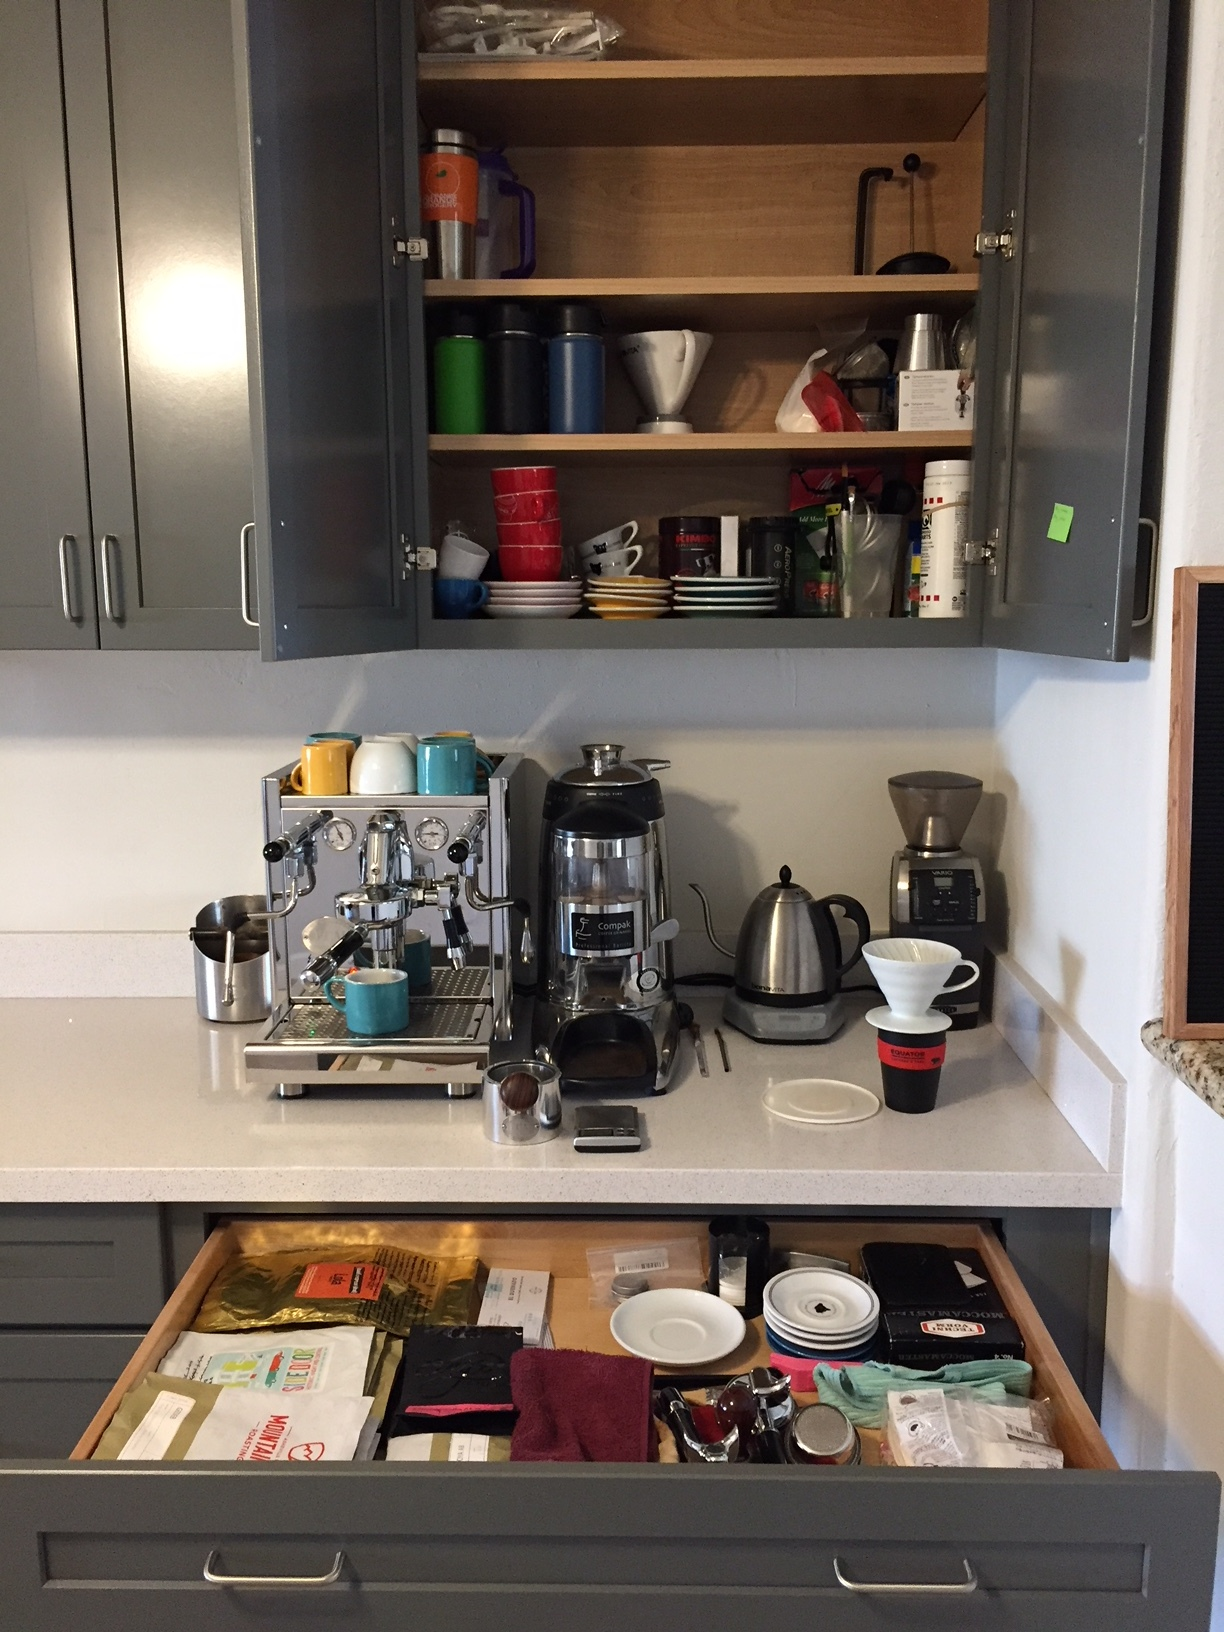 Cups, saucers, travel mugs, other brewers, detergents, brushes, and less used accessories in the cabinet above.